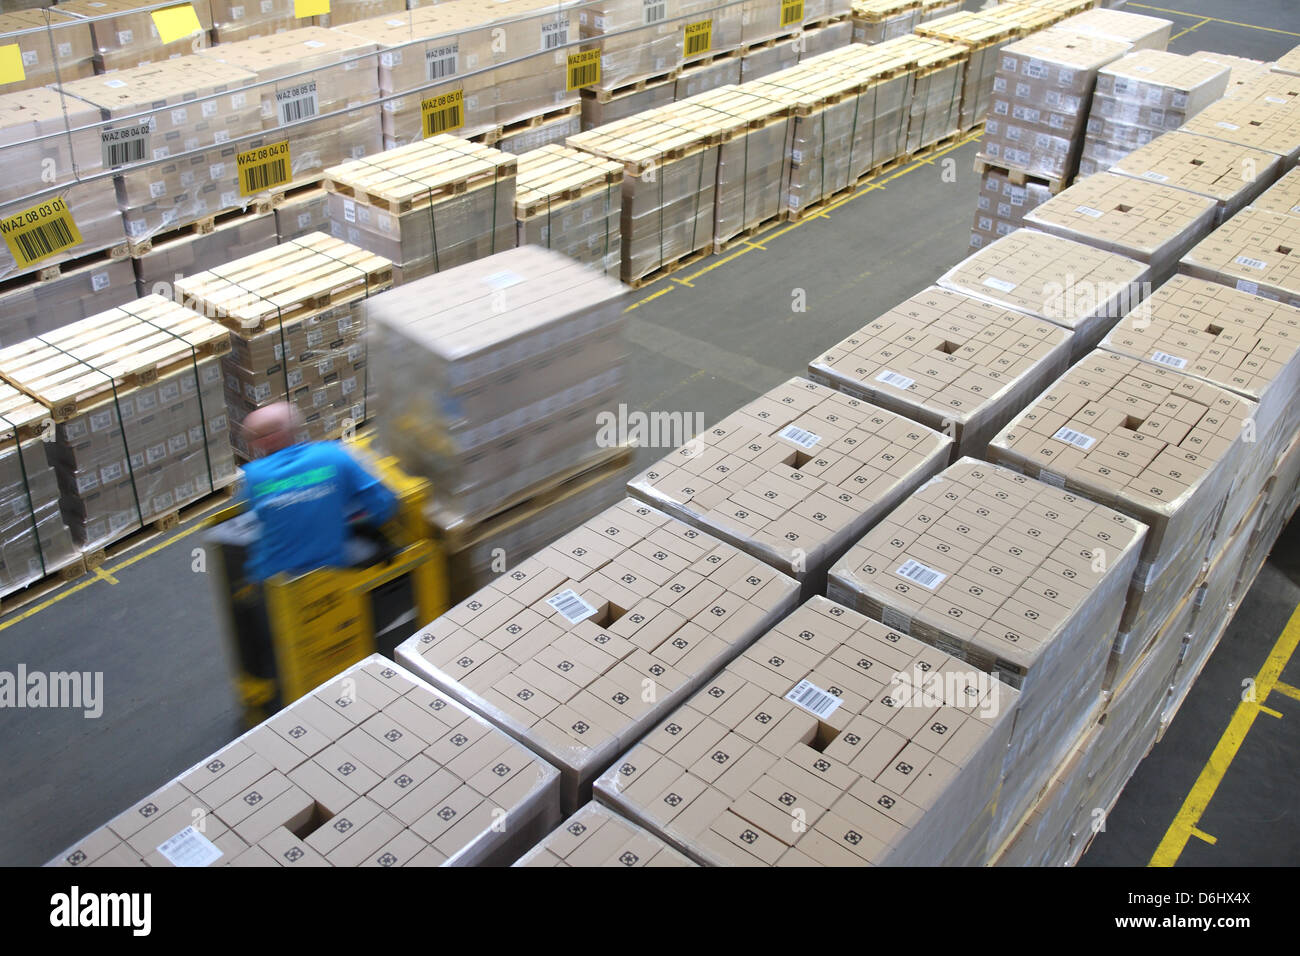 Berlin, Germany, workers in the Dock 100 Logistik GmbH at the logistics center of Dock 100 Stock Photo